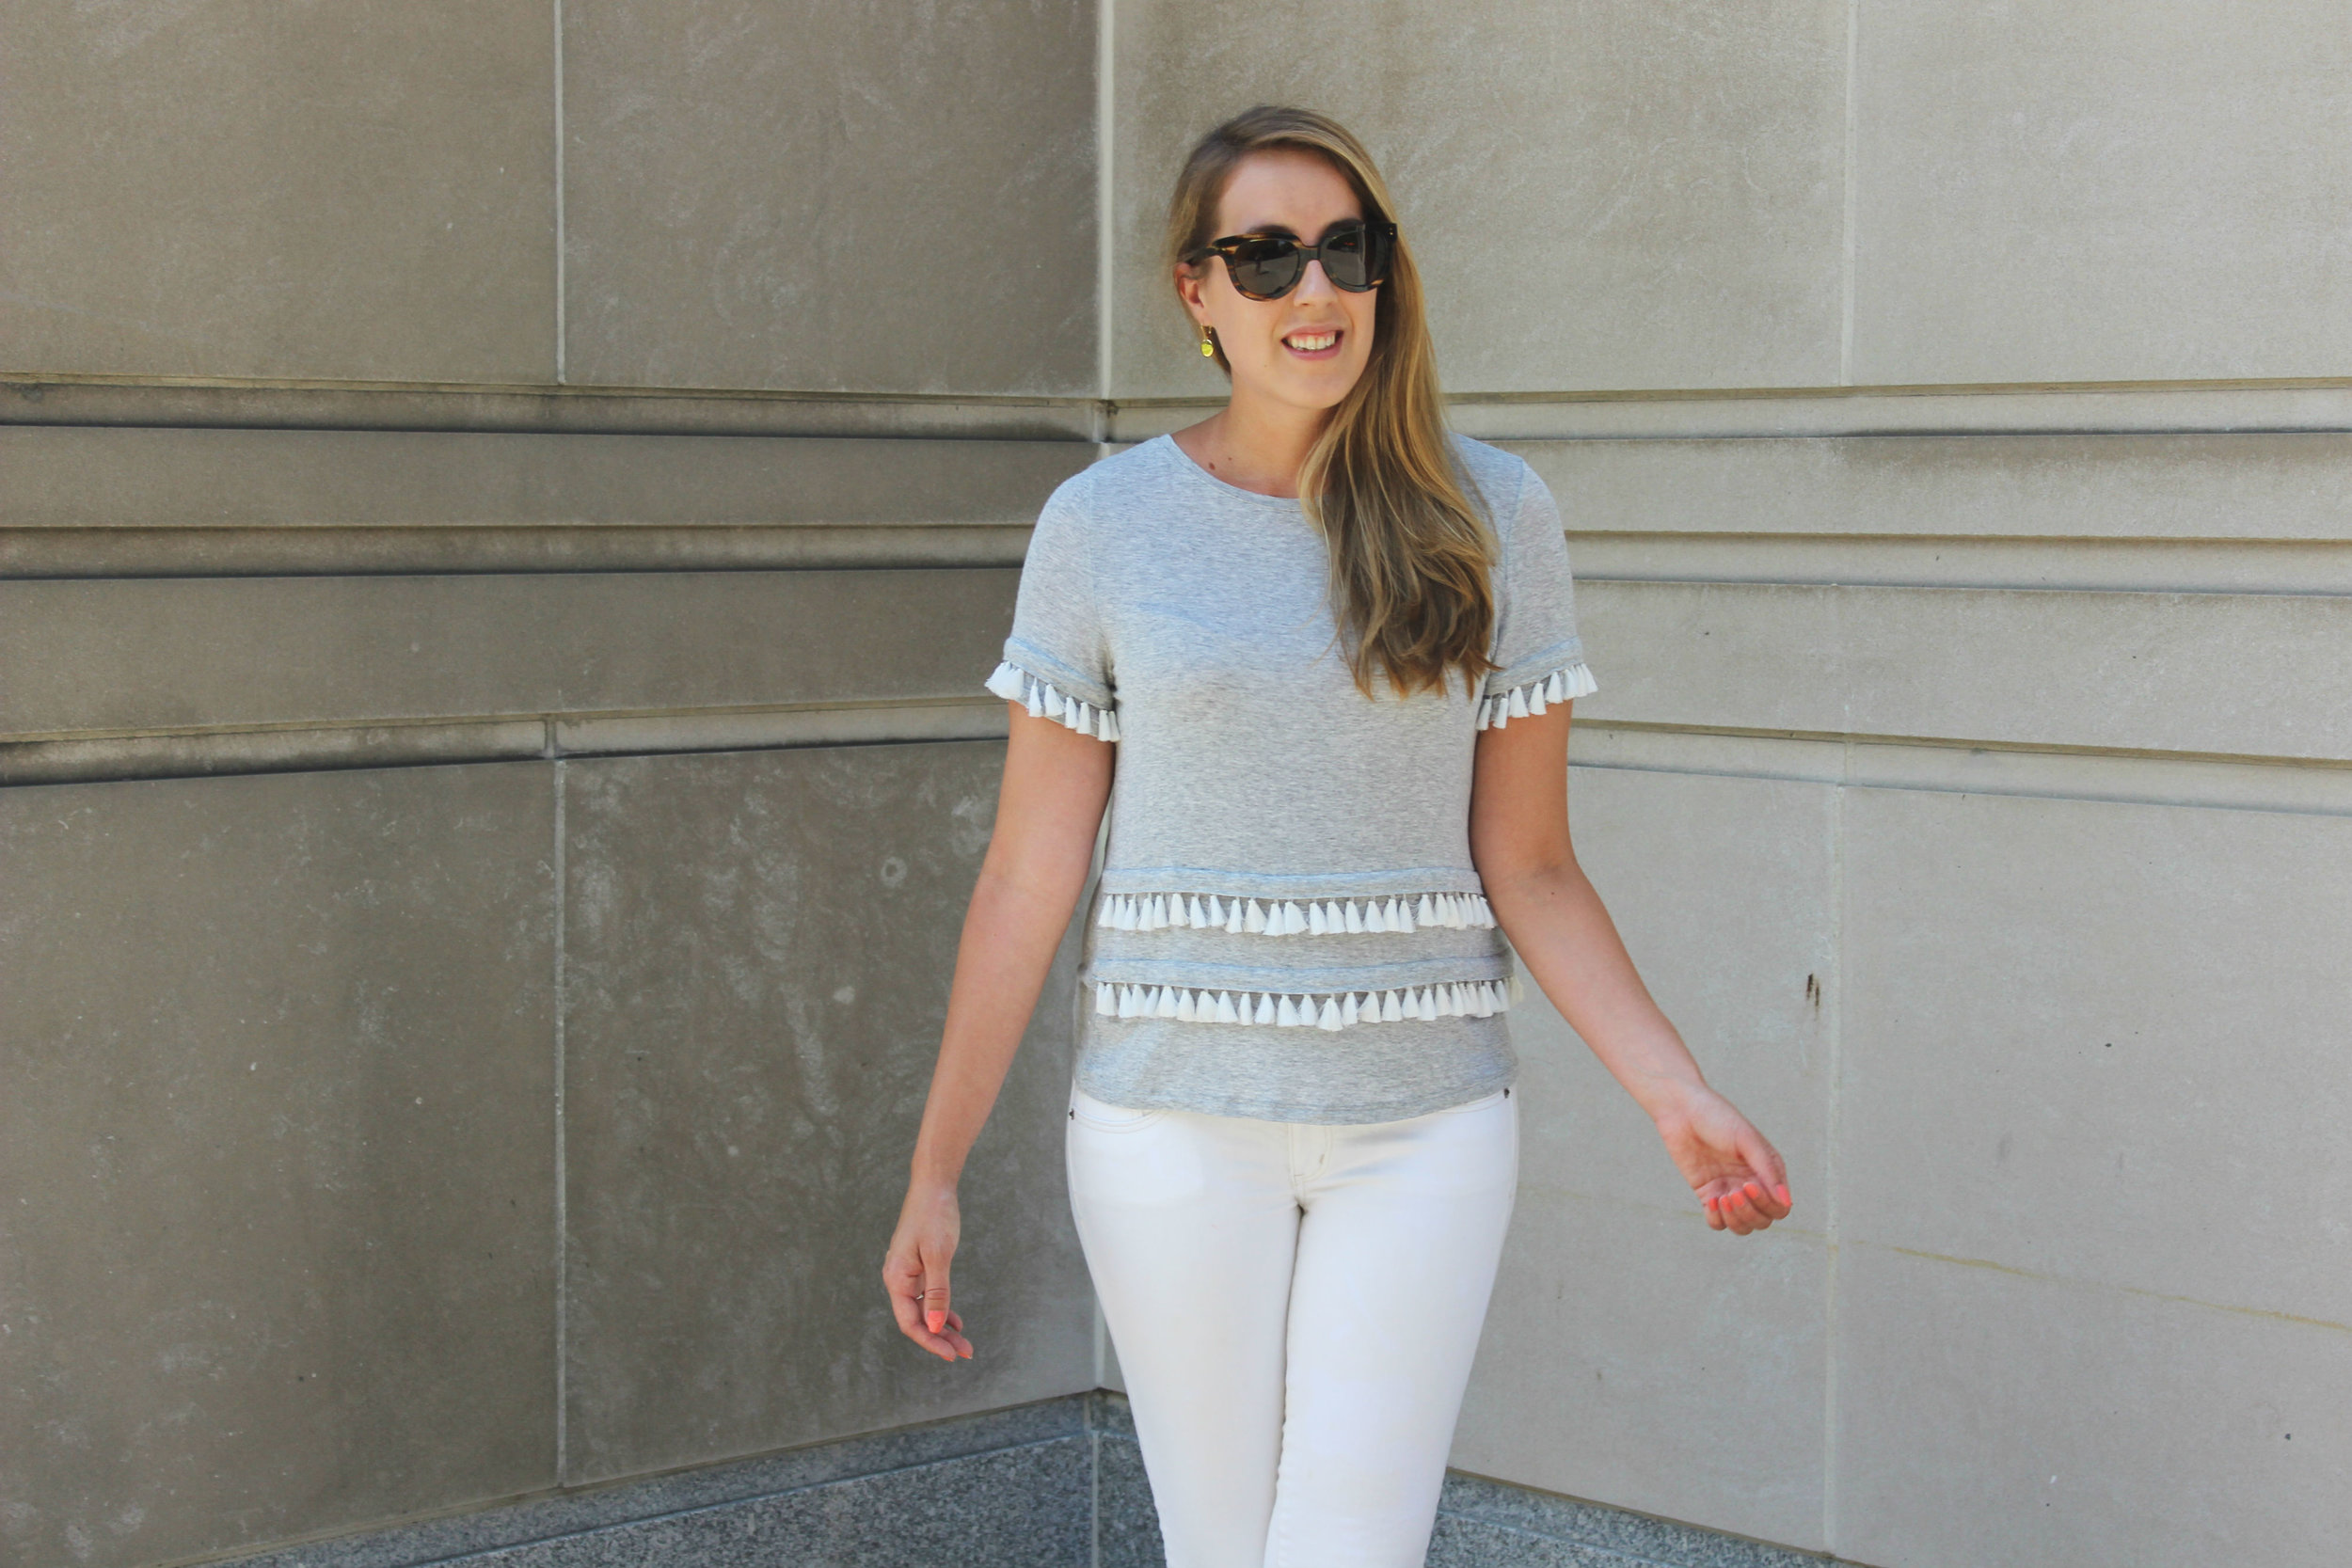 Wearing: Tassel Shirt and White Jeans